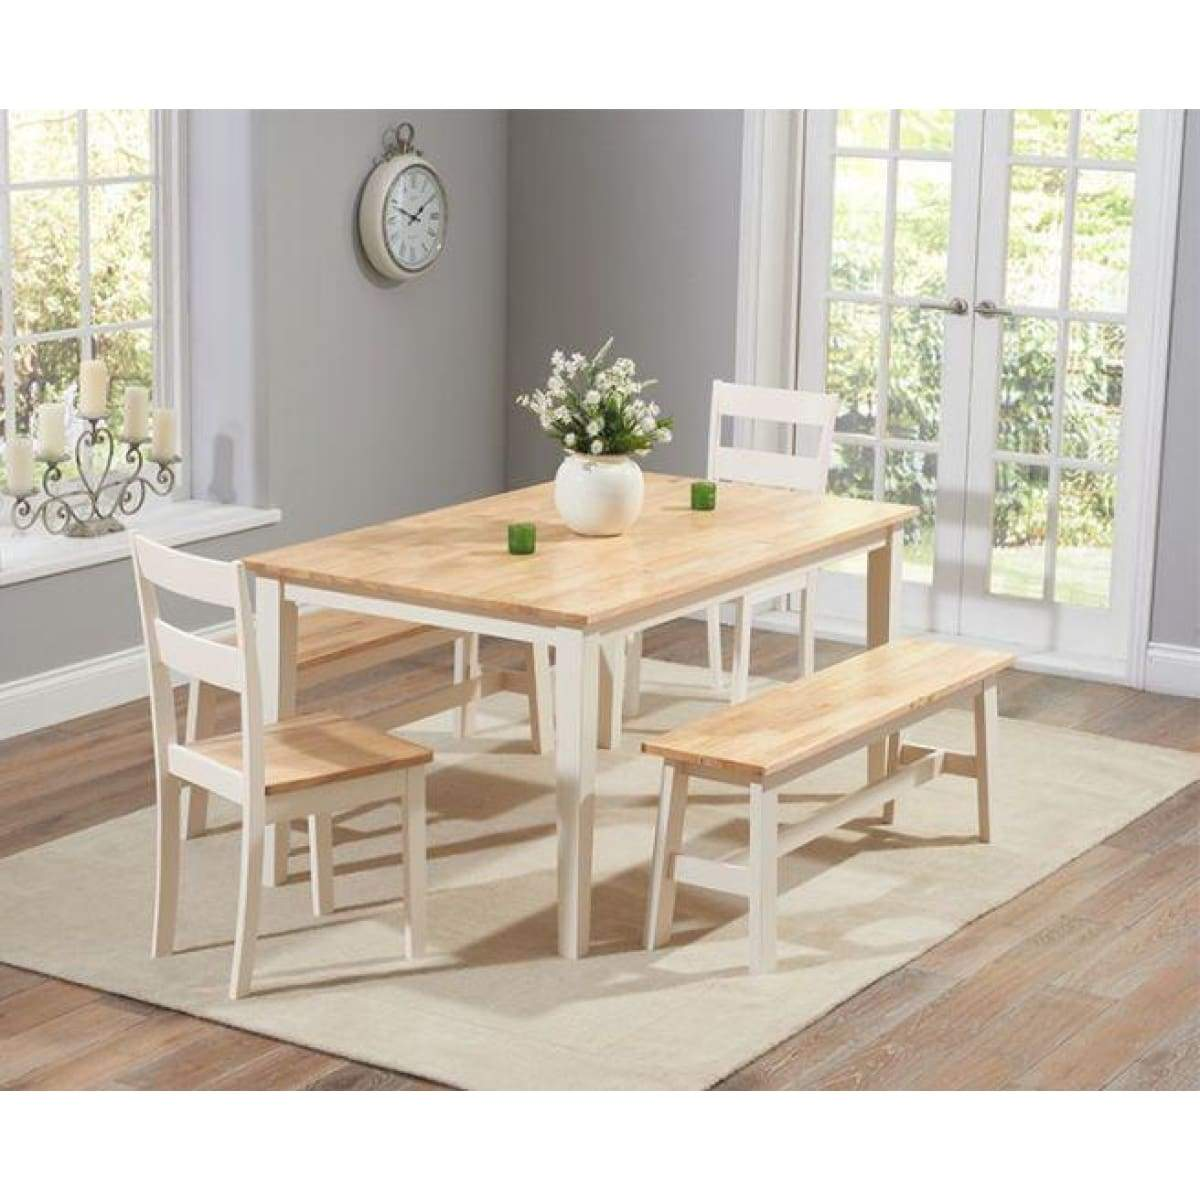 Serene Furnishings Pipe Chichester 150cm Dining Table 4 Chairs 1 Large Bench Oak Creamwhiteoak Greyoak White